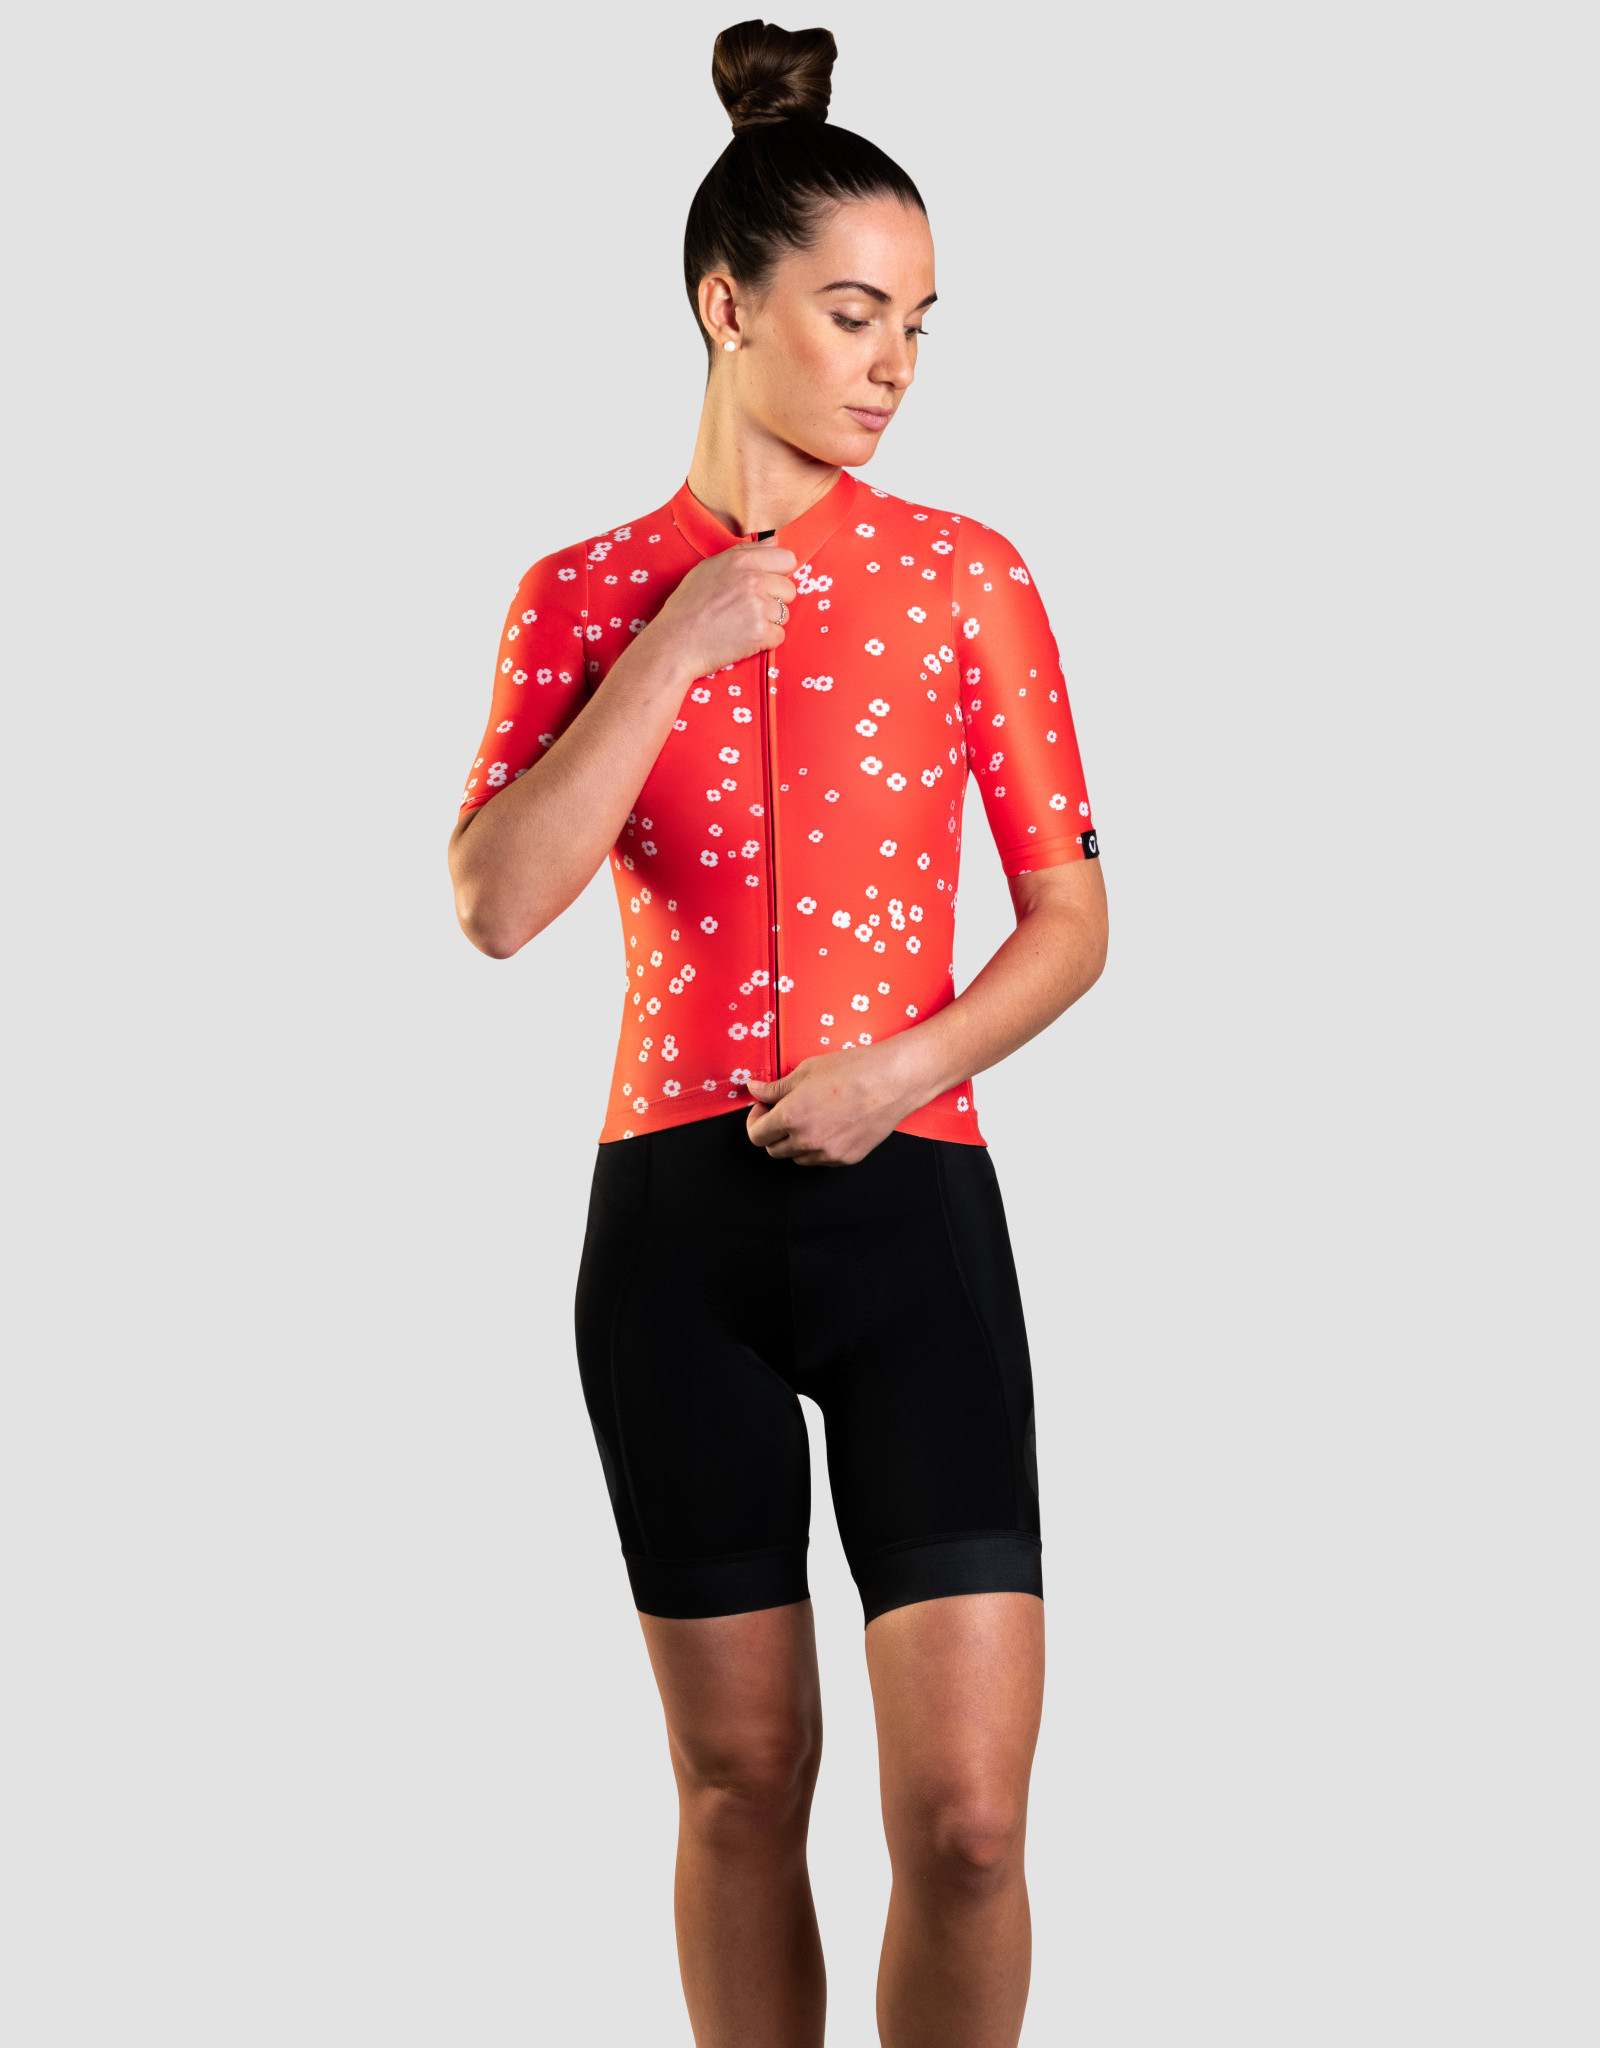 Black Sheep Cycling Women's TEAM jersey - Daisy Warm Red